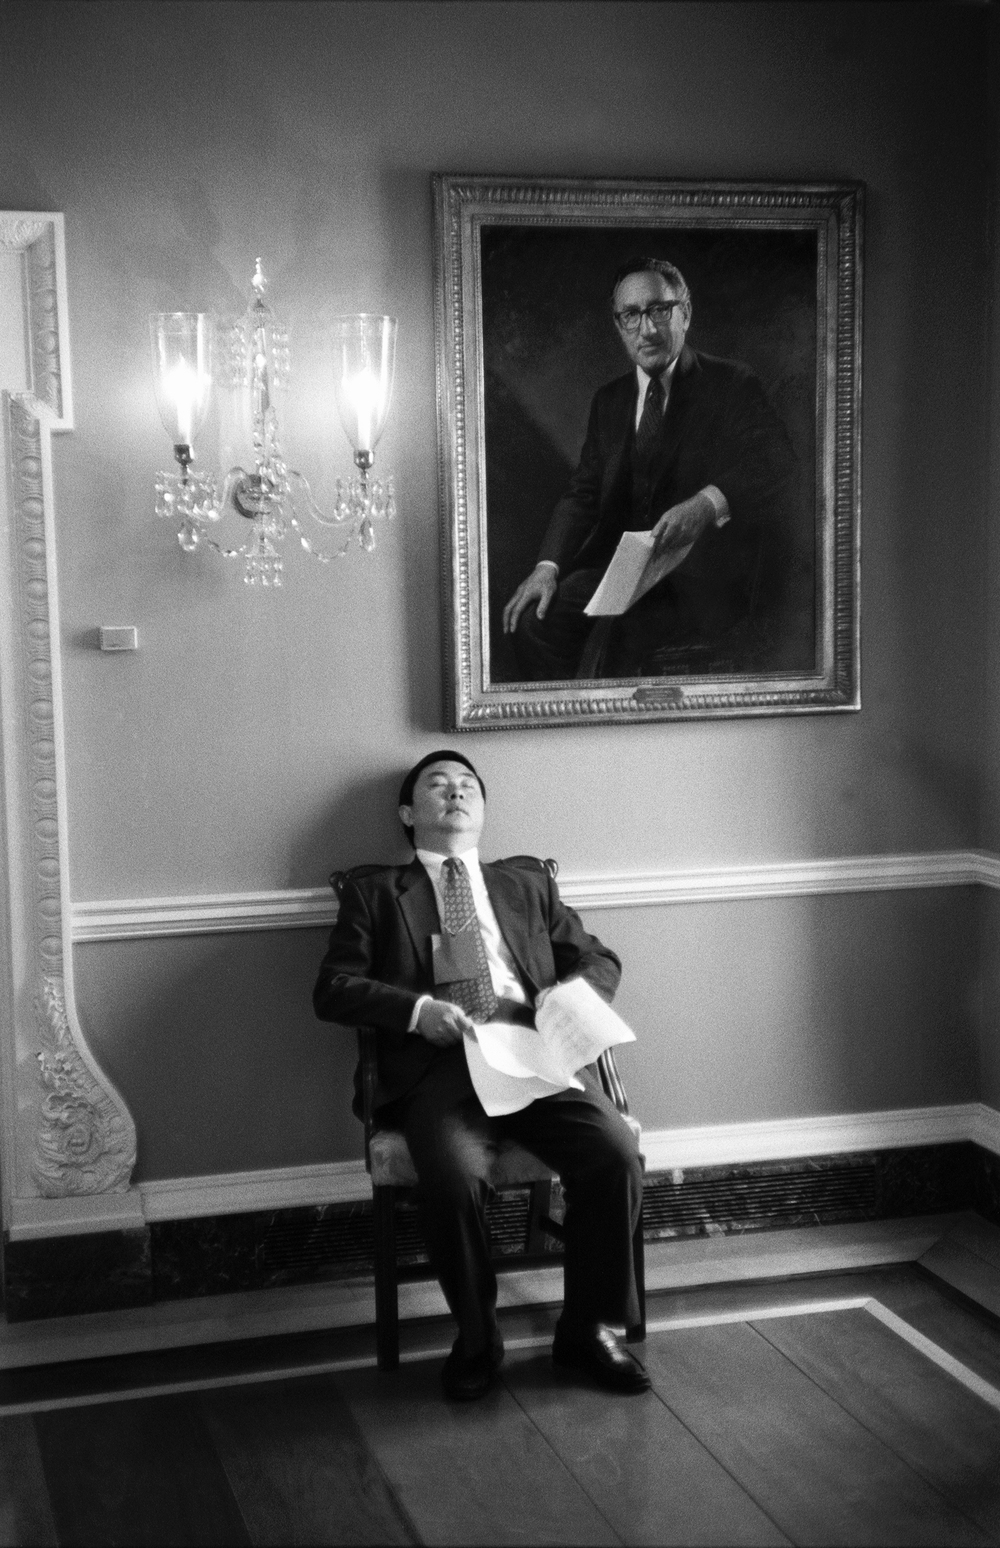 4.9.99--Washington, DC--A diplomatic aide snoozes under a portrait of Henry Kissinger at the State Department just 20 feet away from a joint press conference between Vice President Al Gore and The People's Republic of China's Premier Zhu Rongji.